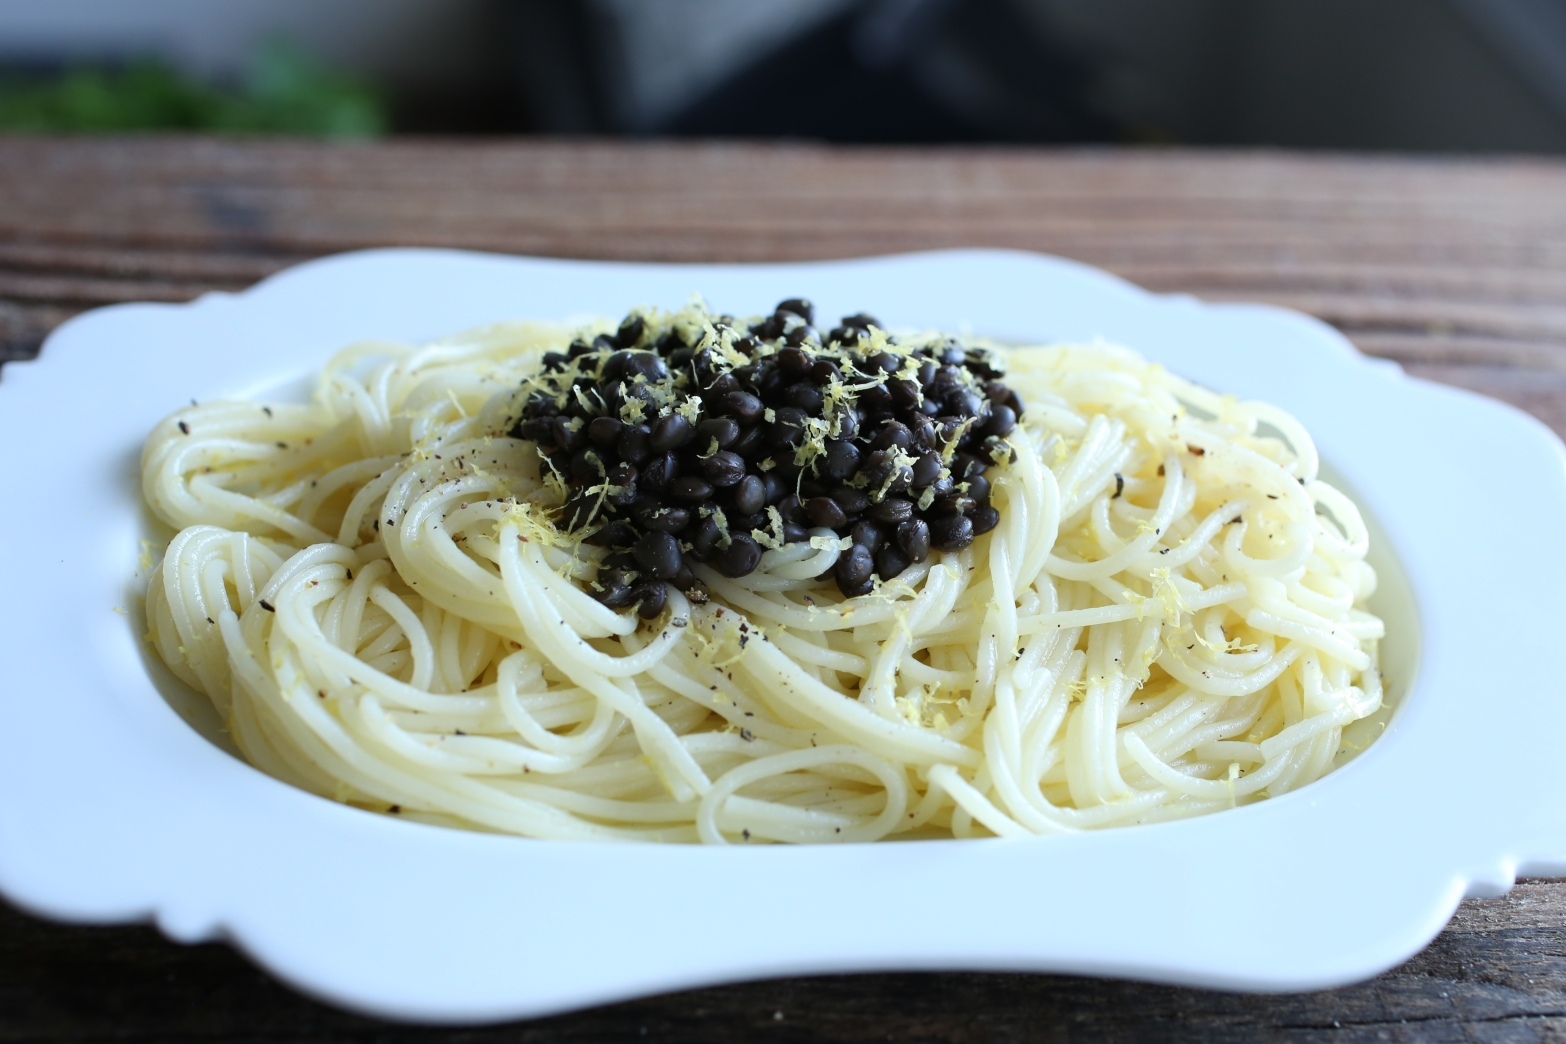 Lemon Capellini with Black Lentils